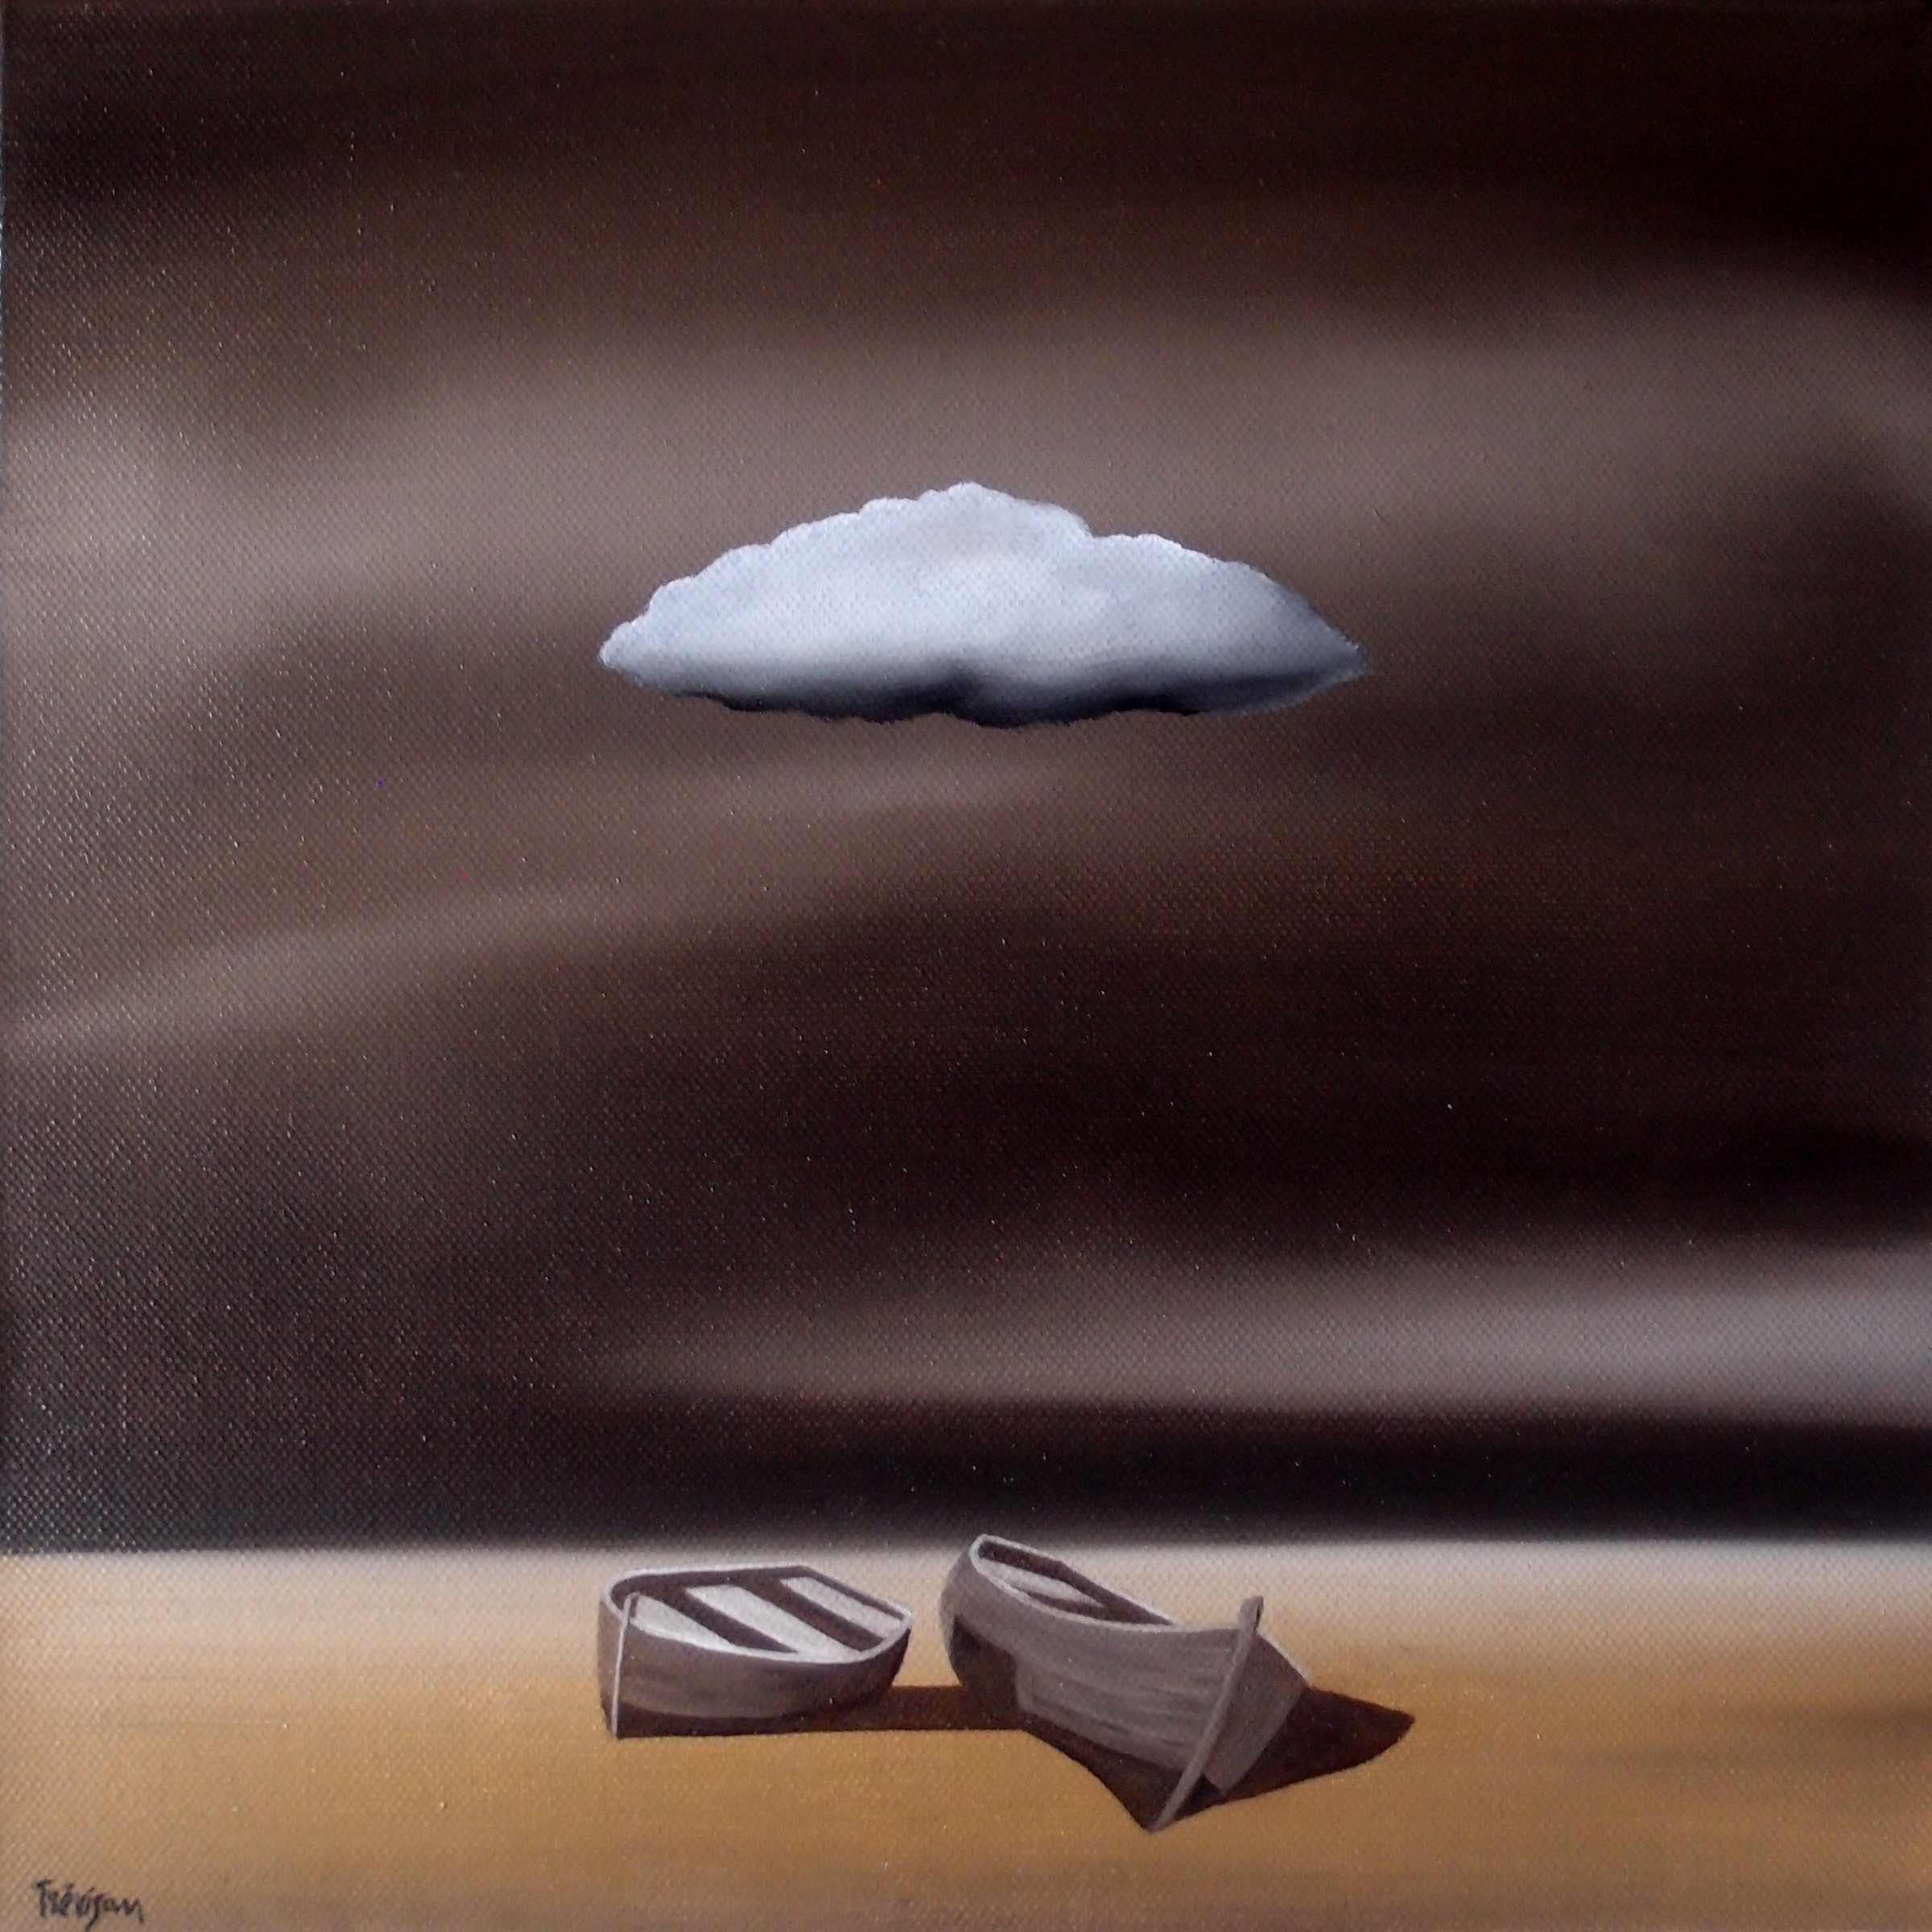 'The Cloud', Oil on canvas, 30 x 30 cm, £400